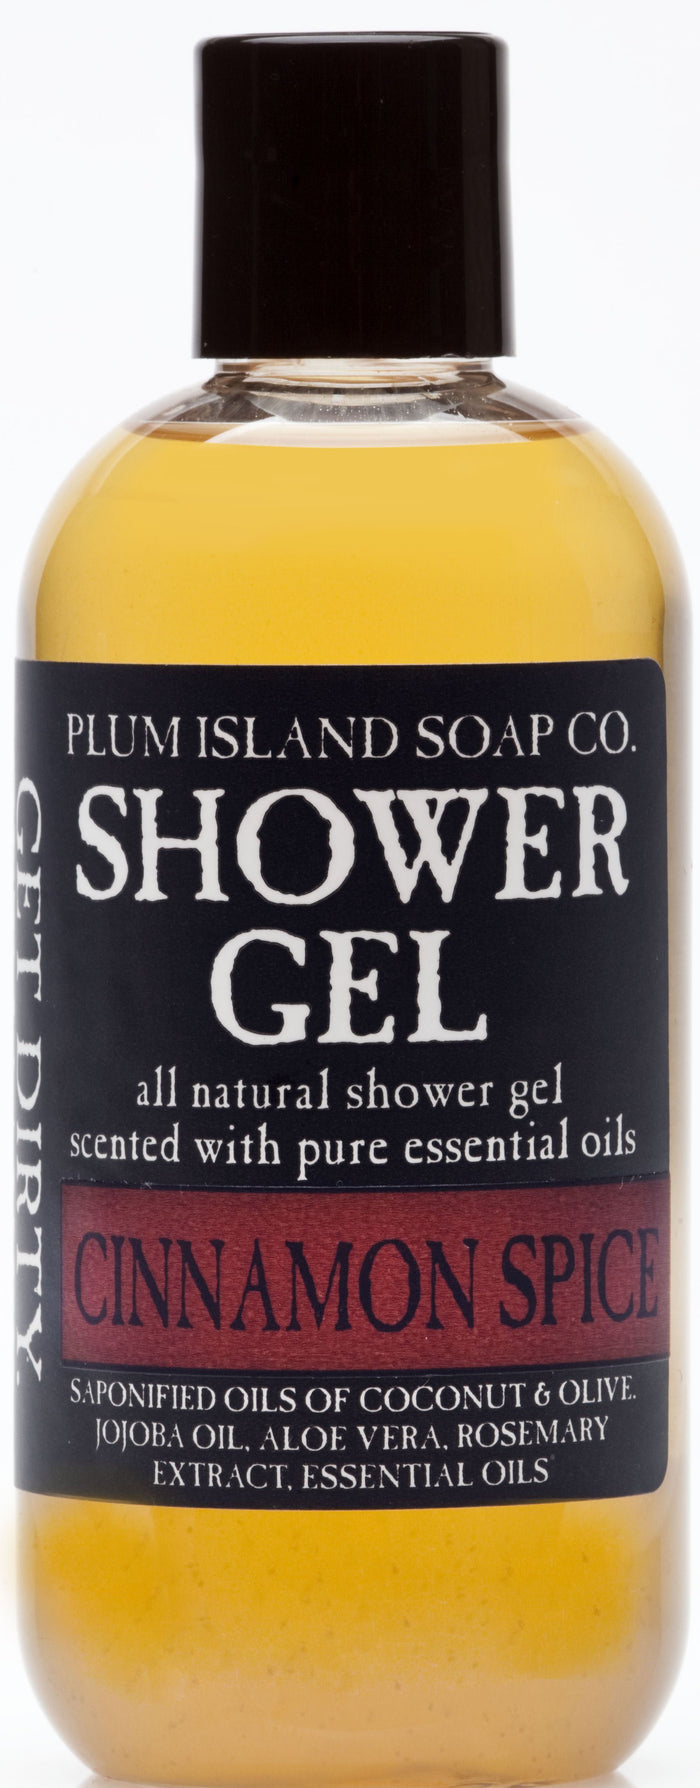 Cinnamon Spice Shower Gel